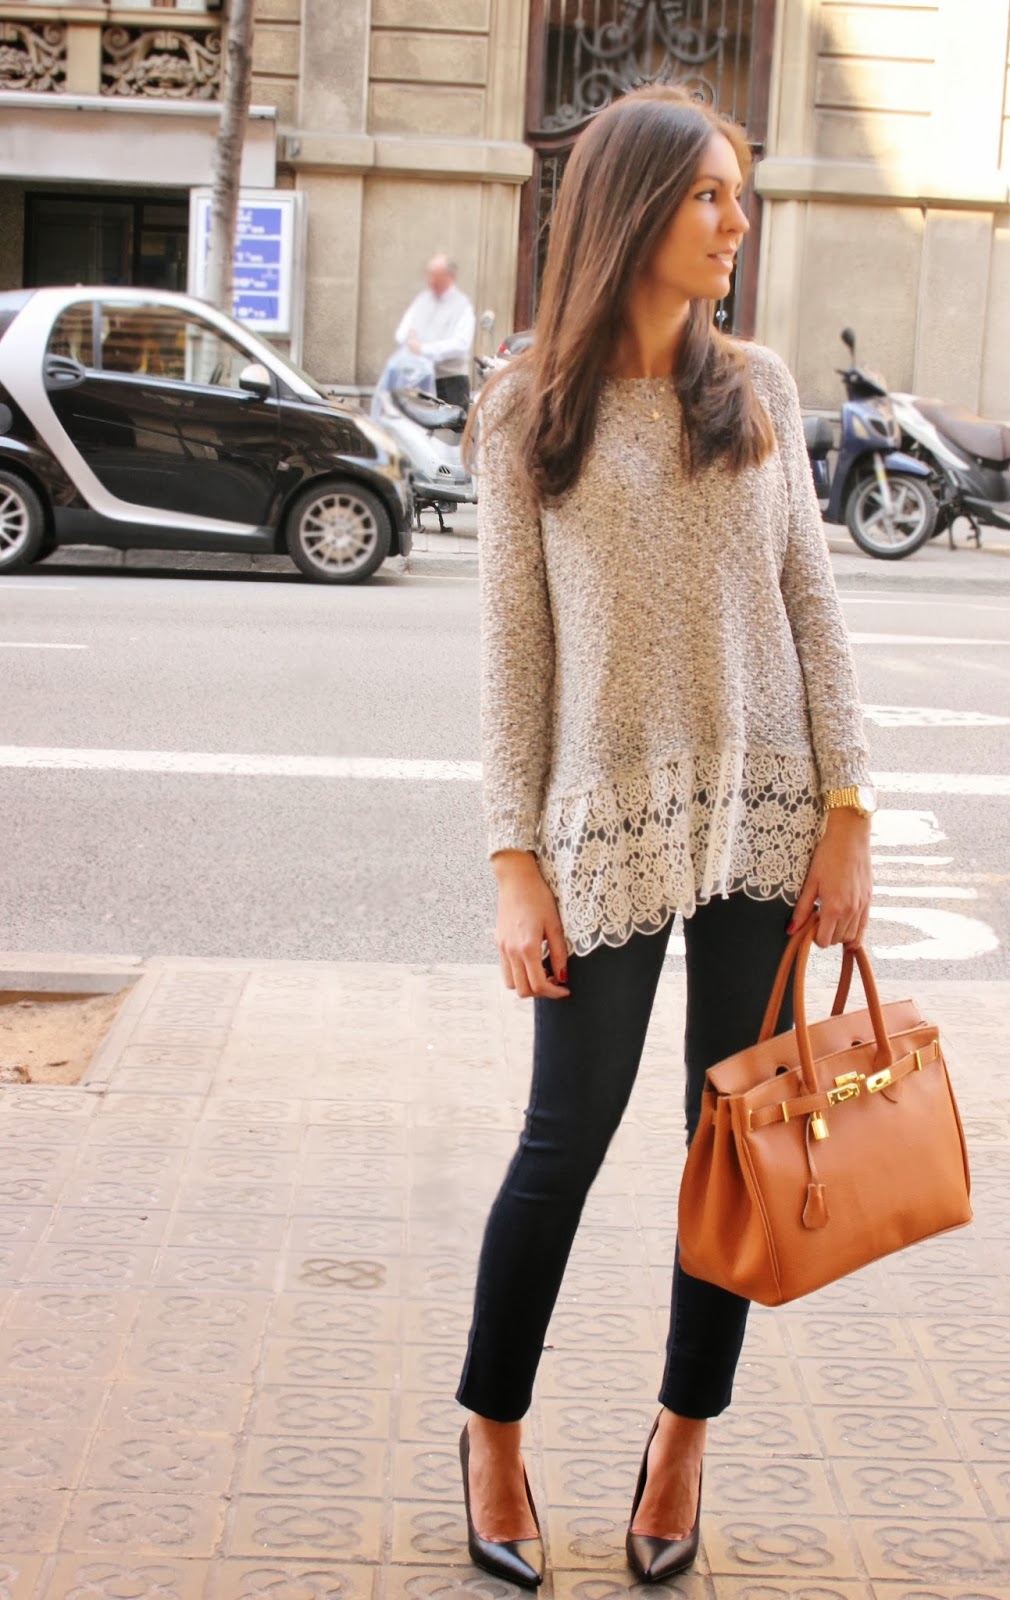 BCN Fashionista In A Sweater From Barcelona Low Chic